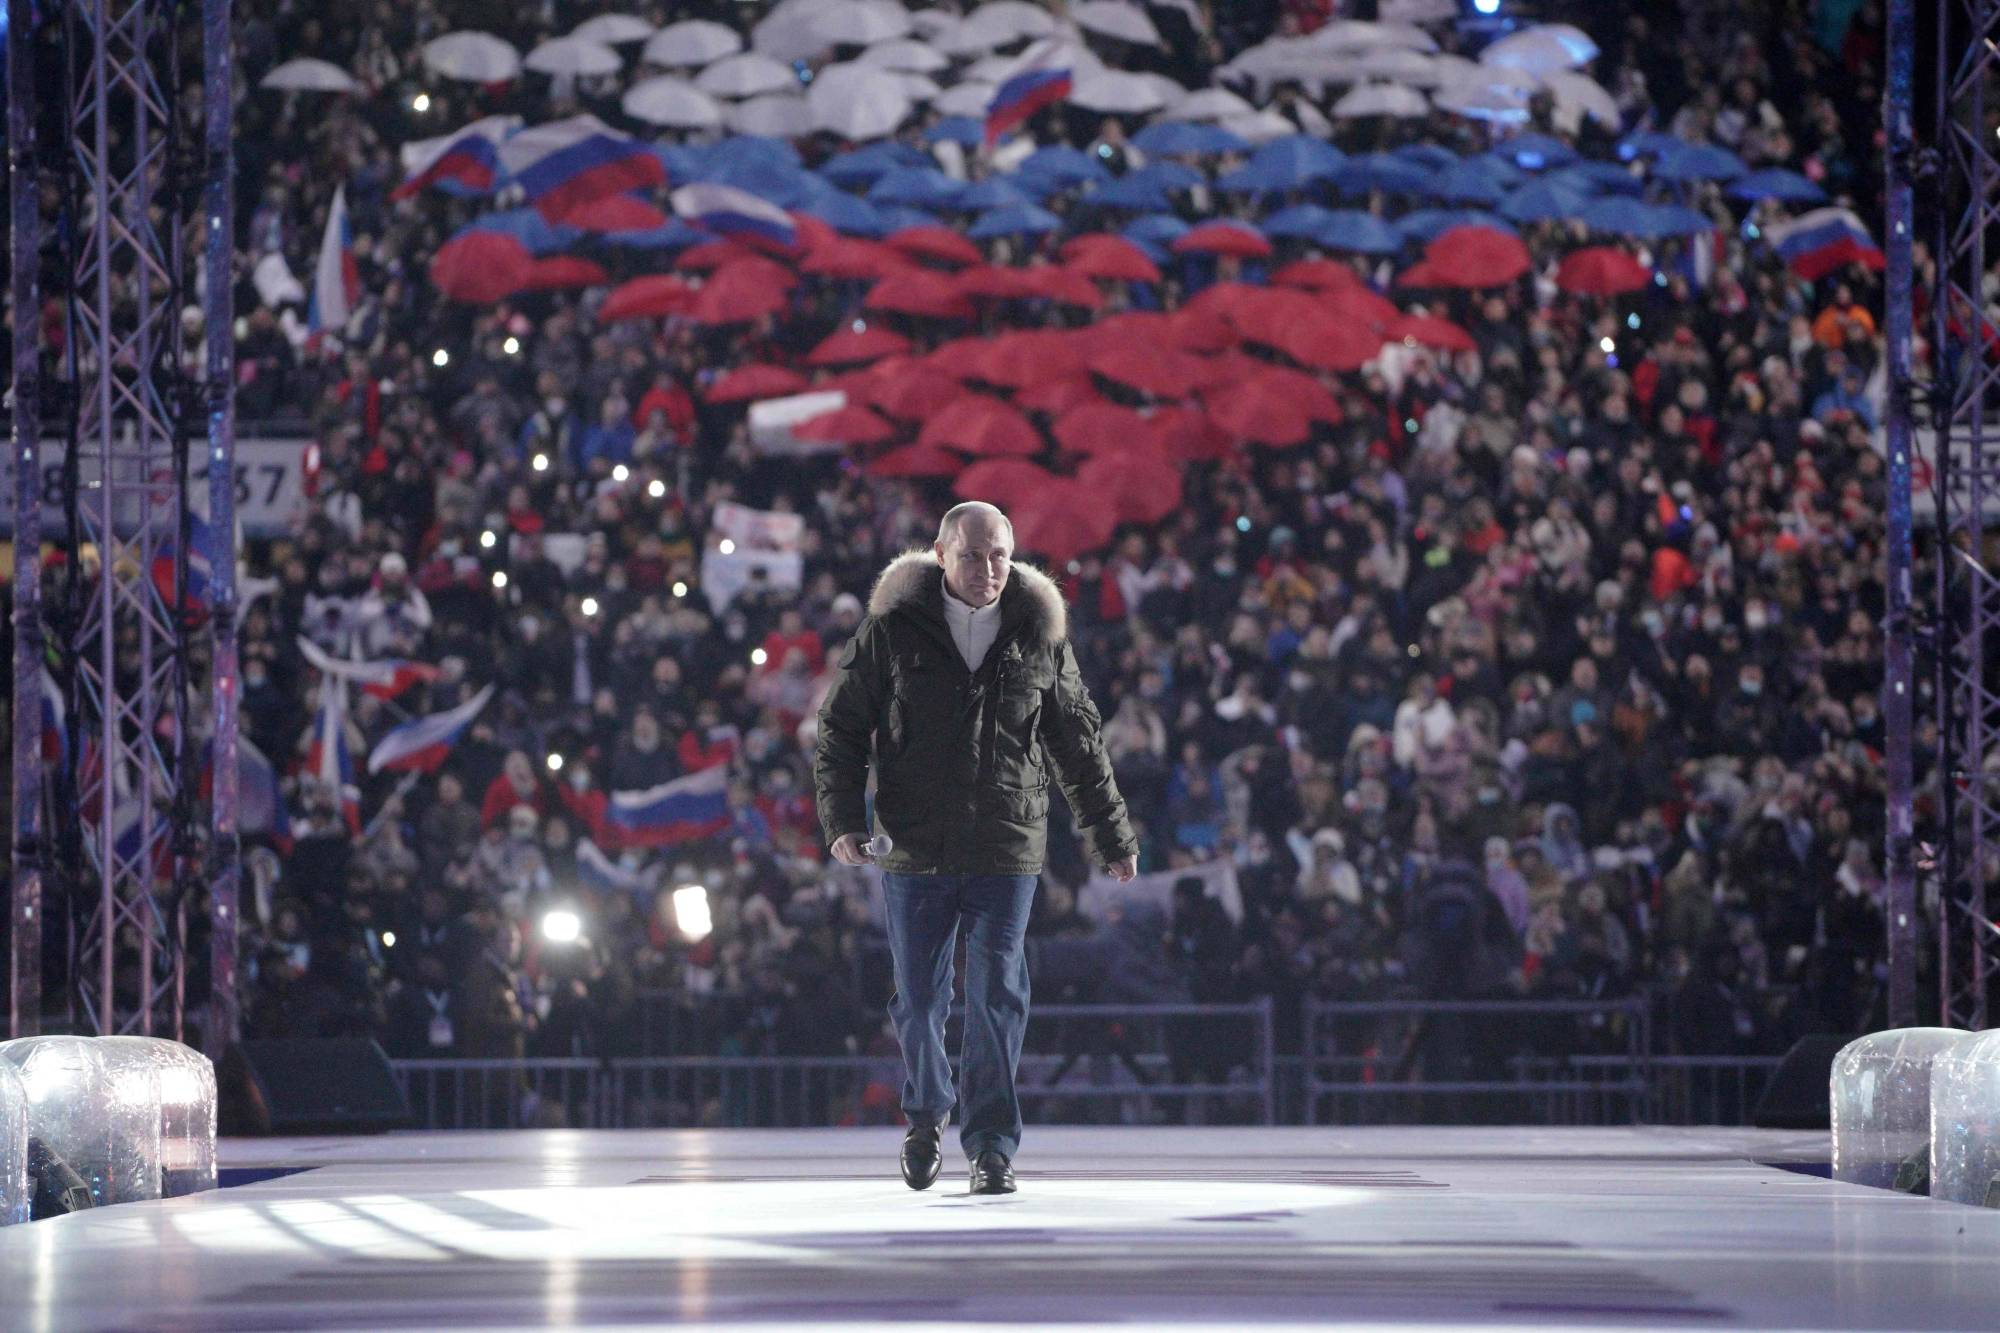 Russian President Vladimir Putin attends a concert marking the seventh anniversary of Russia's annexation of Crimea in Moscow on Thursday. | SPUTNIK / VIA AFP-JIJI